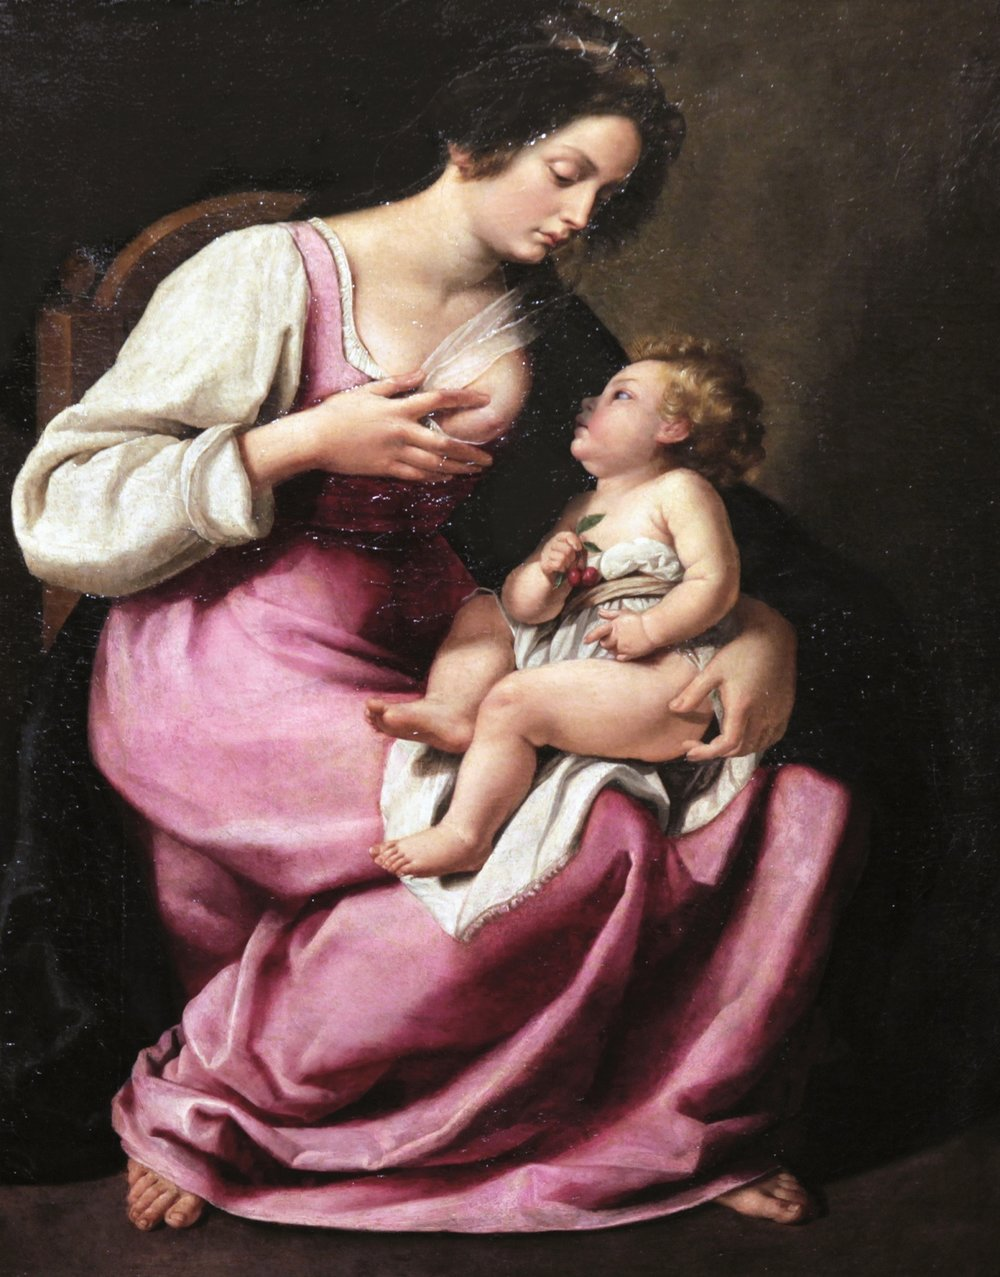 A portrait by Lavinia Fontana at the Pitti Palace.